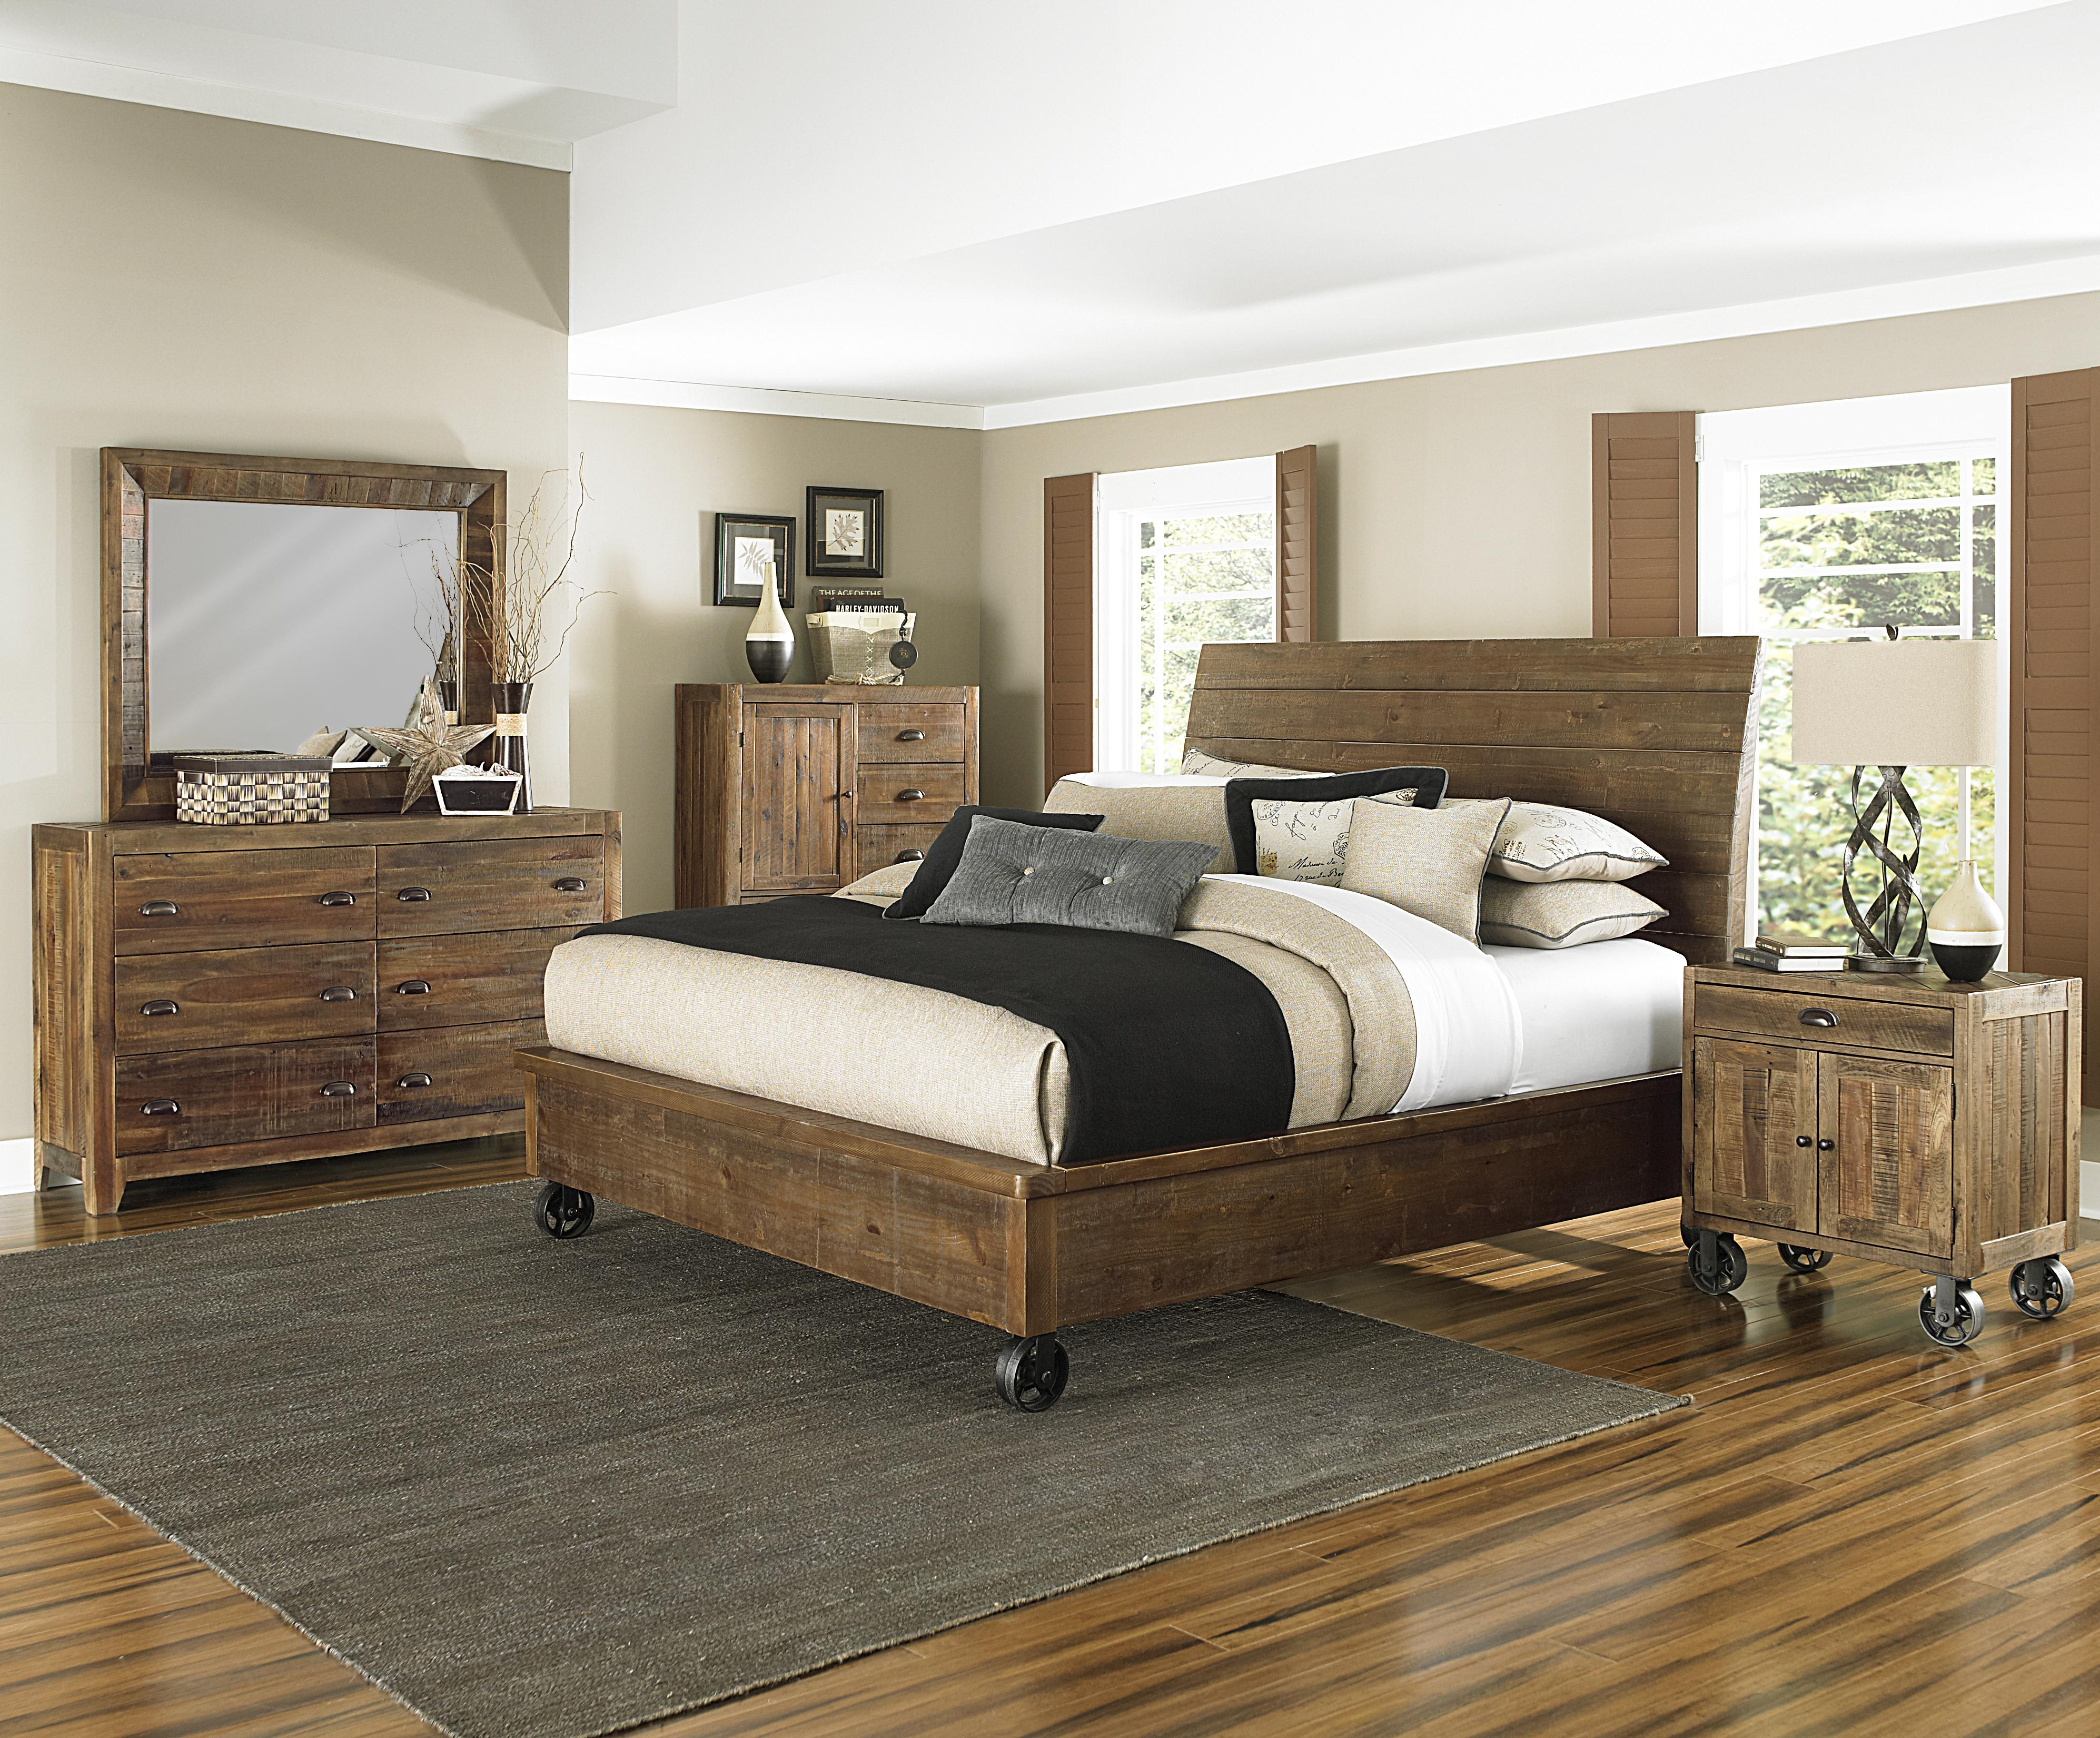 Magnussen Home  River Ridge Queen Bedroom Group - Item Number: B2375 Q Bedroom Group 2